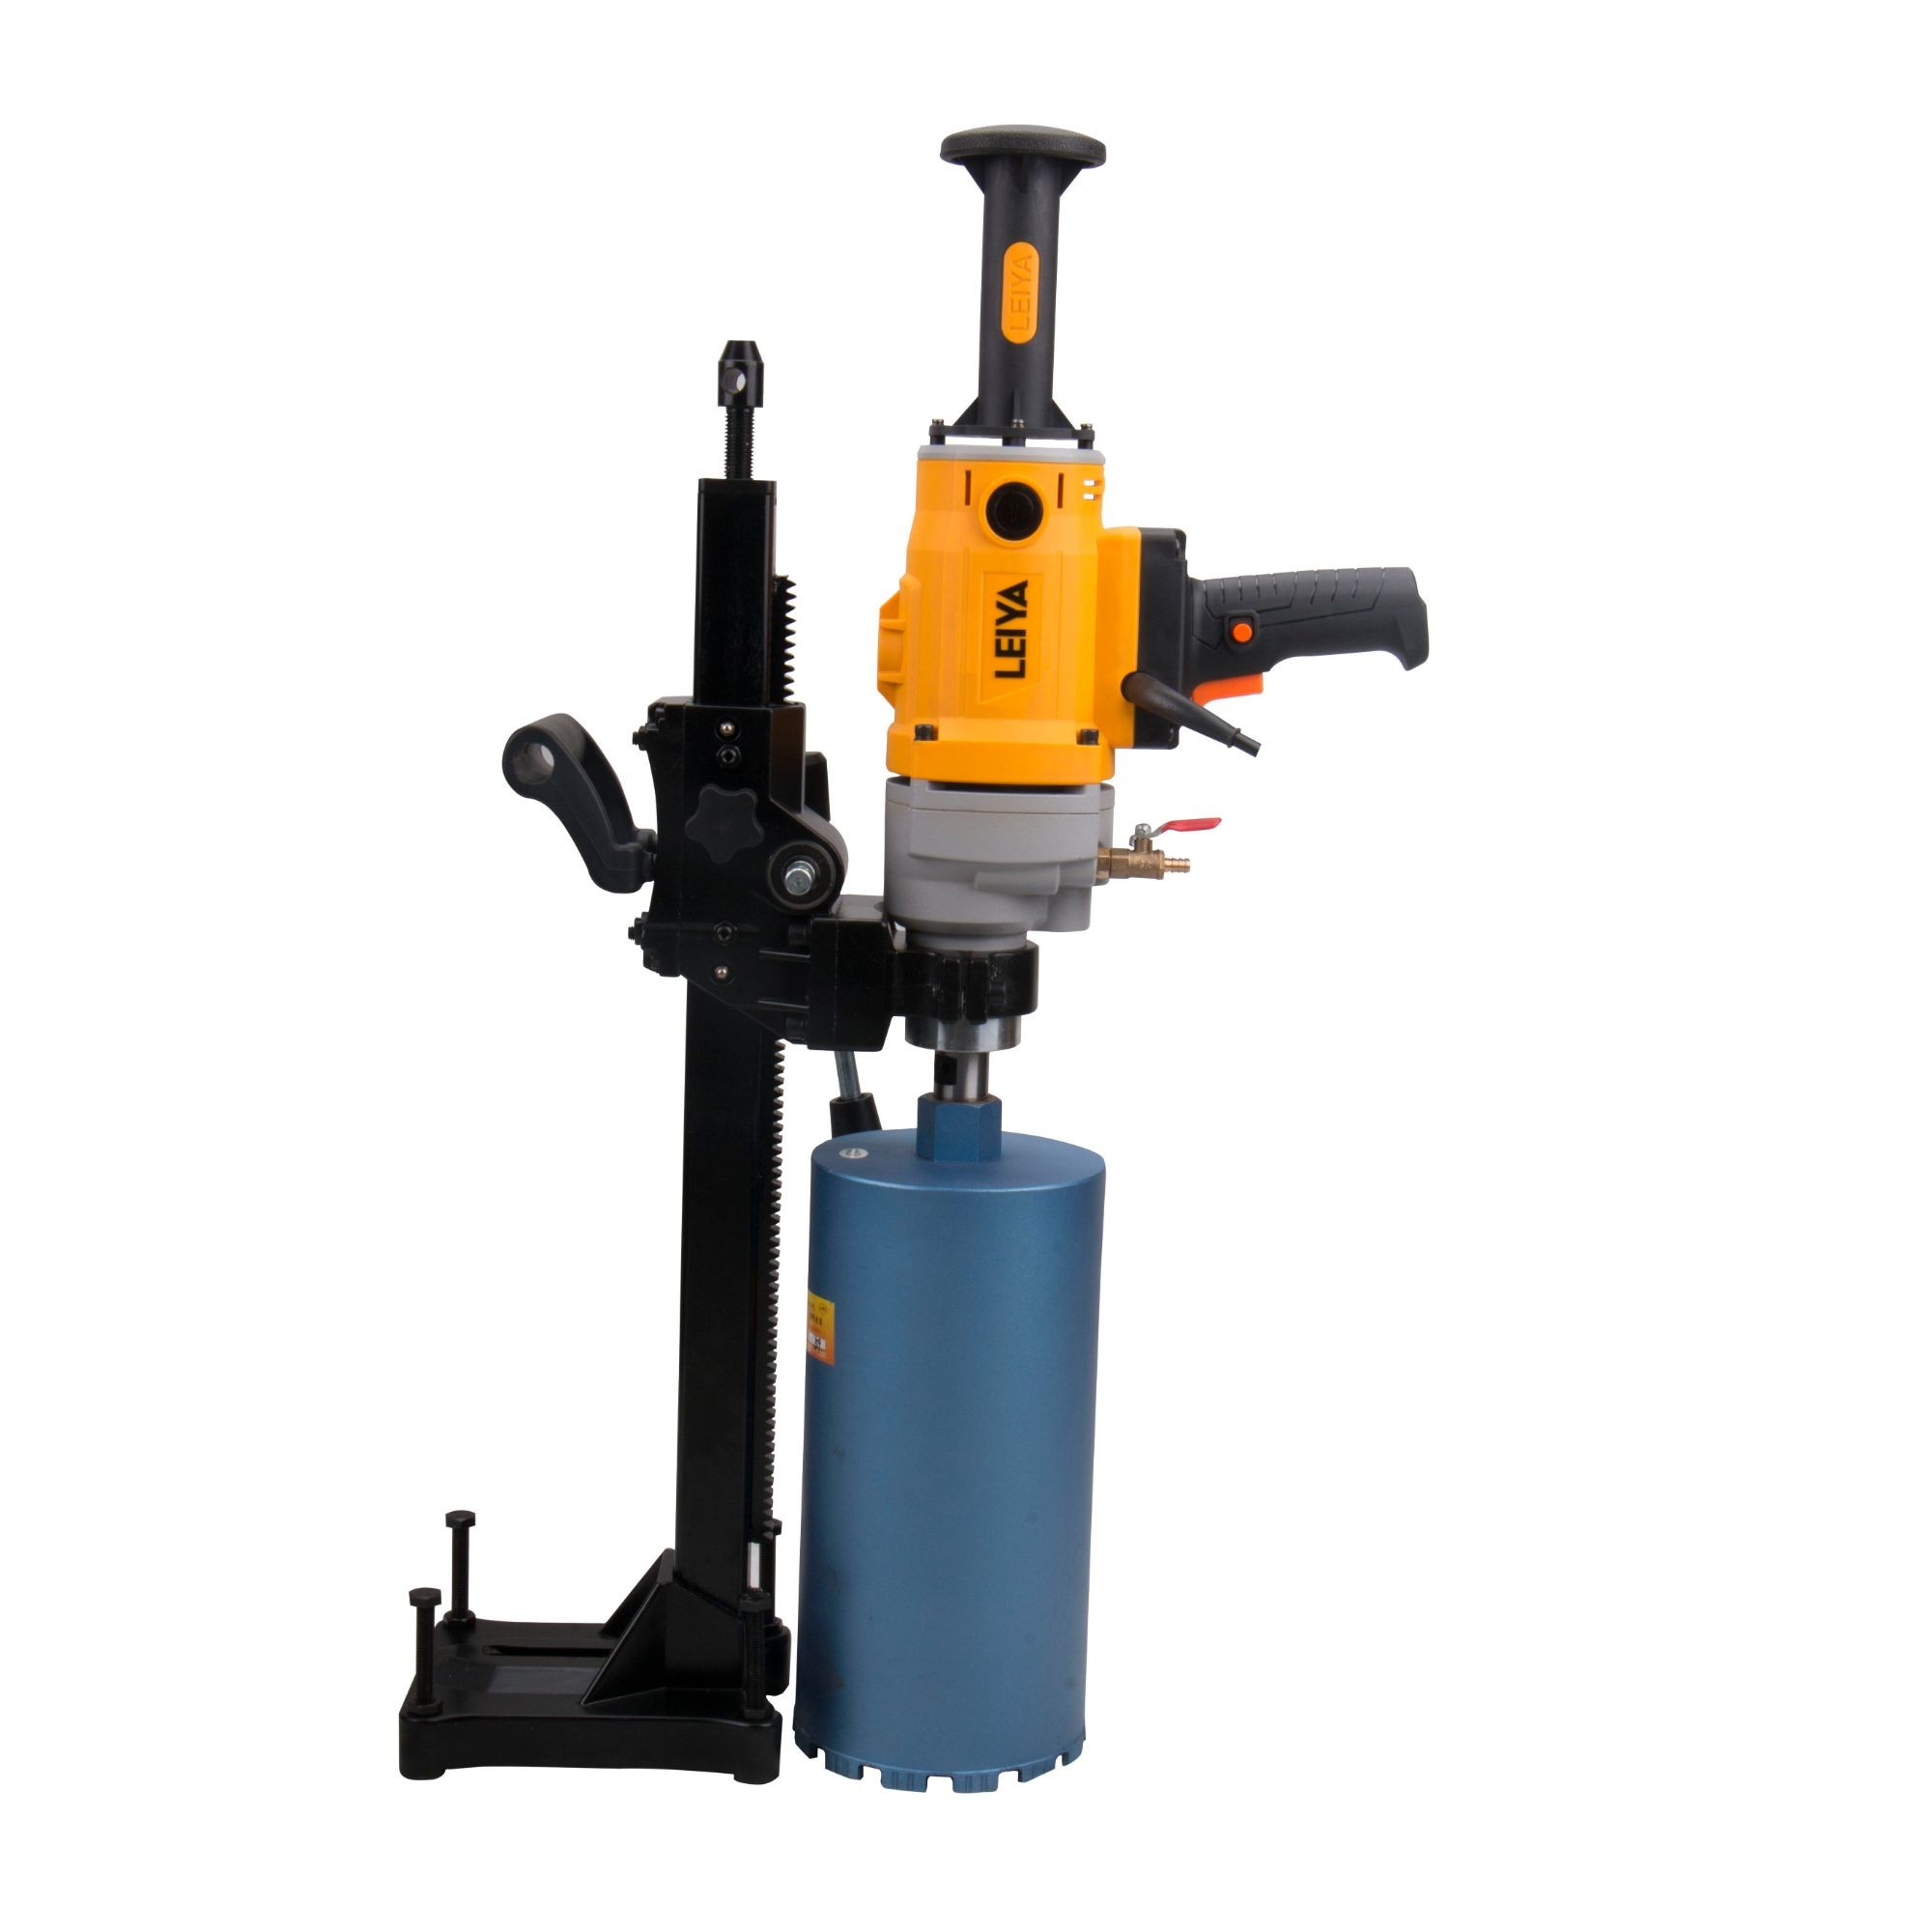 175mm 2300w Diamond Core Drill With Stable Handle LY-6175B